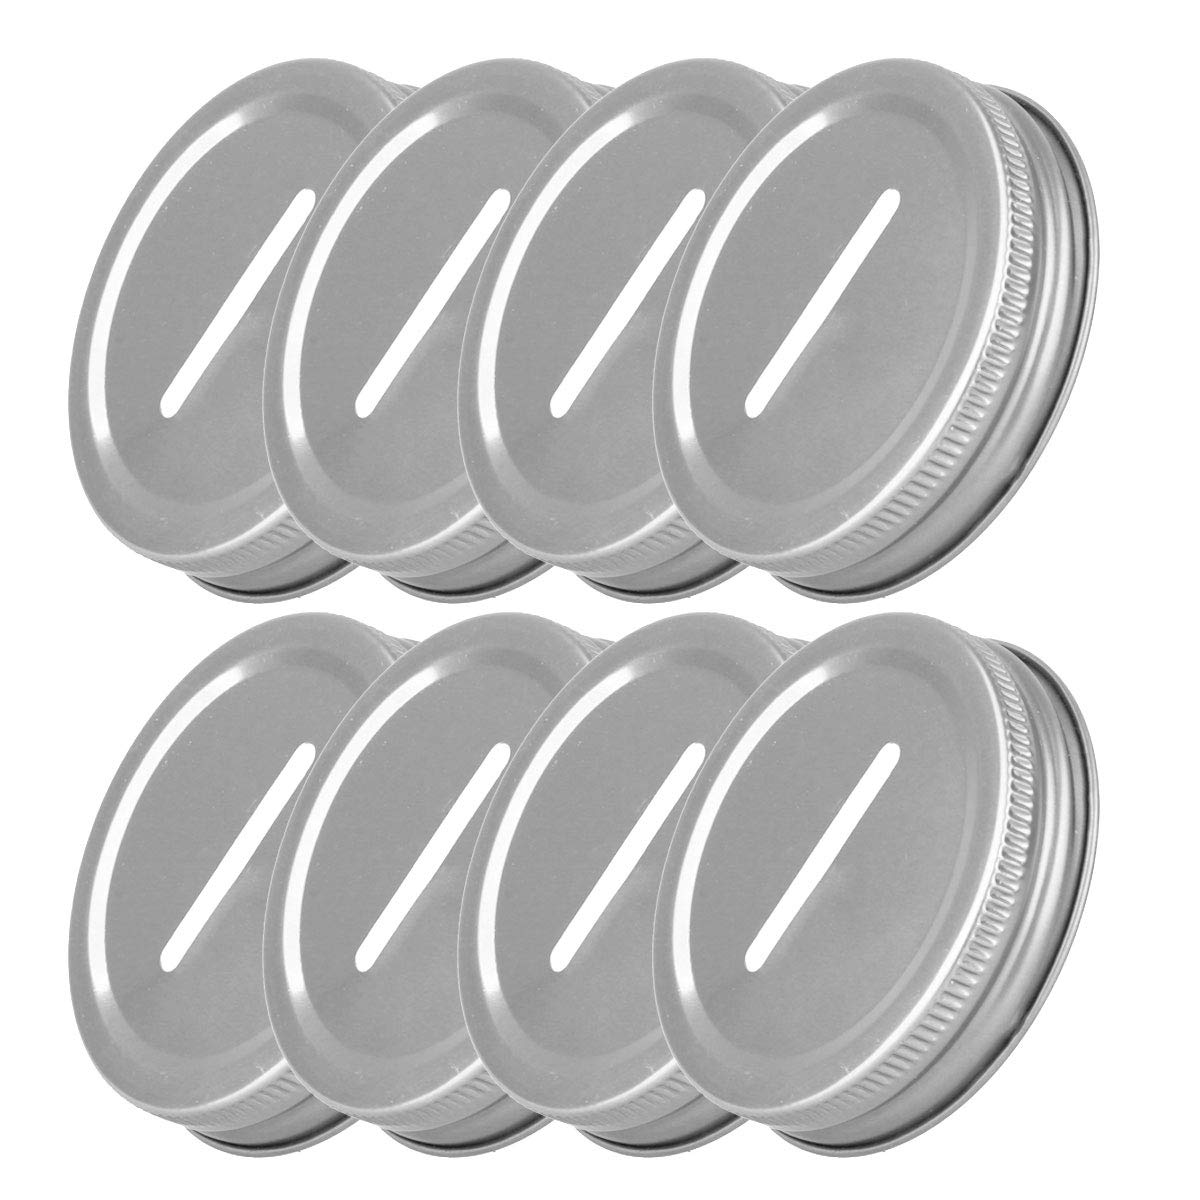 iiniim 8pcs Rust Resistant Stainless Steel Metal Coin Slot Bank Lid Inserts for Mason Jars Canning Jars Silver One Size